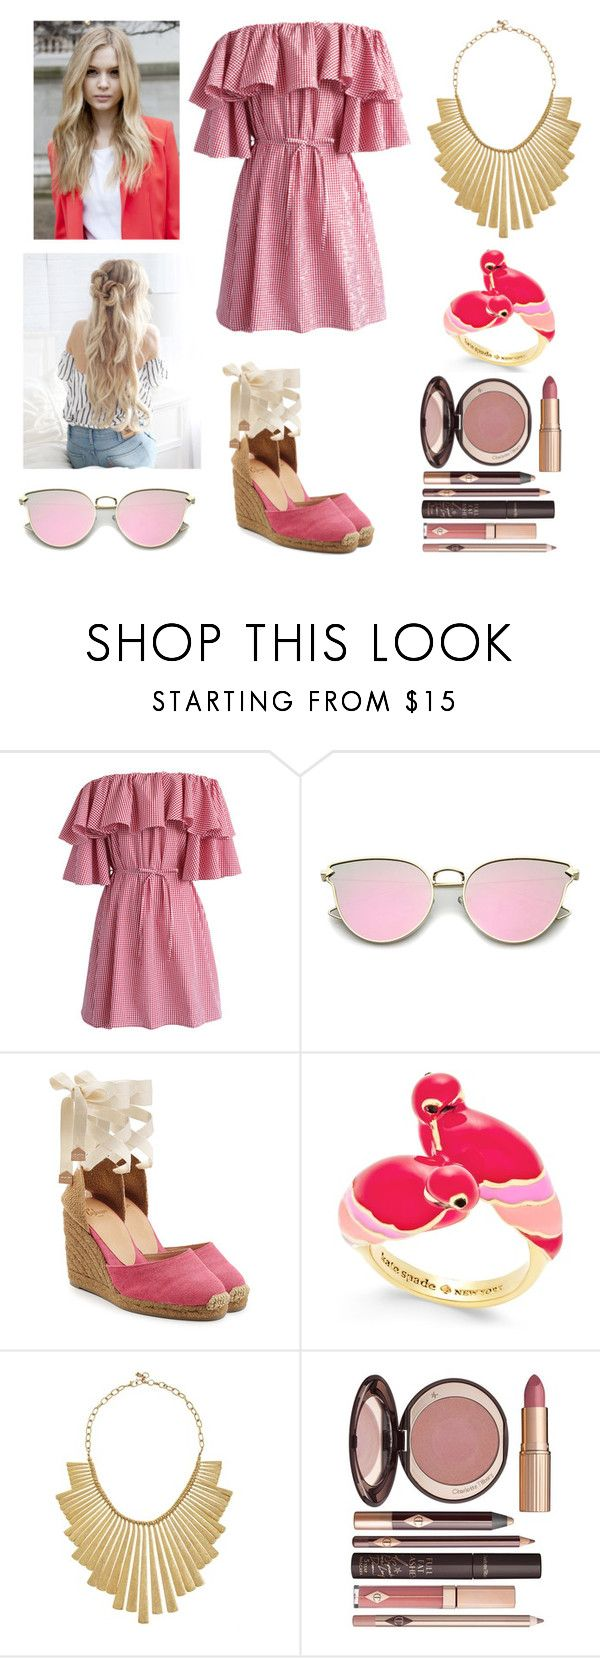 """""""April Stone ~ Spring Formal"""" by accio-hogwarts-81 ❤ liked on Polyvore featuring Chicwish, Castañer, Kate Spade, Lucky Brand and Charlotte Tilbury"""